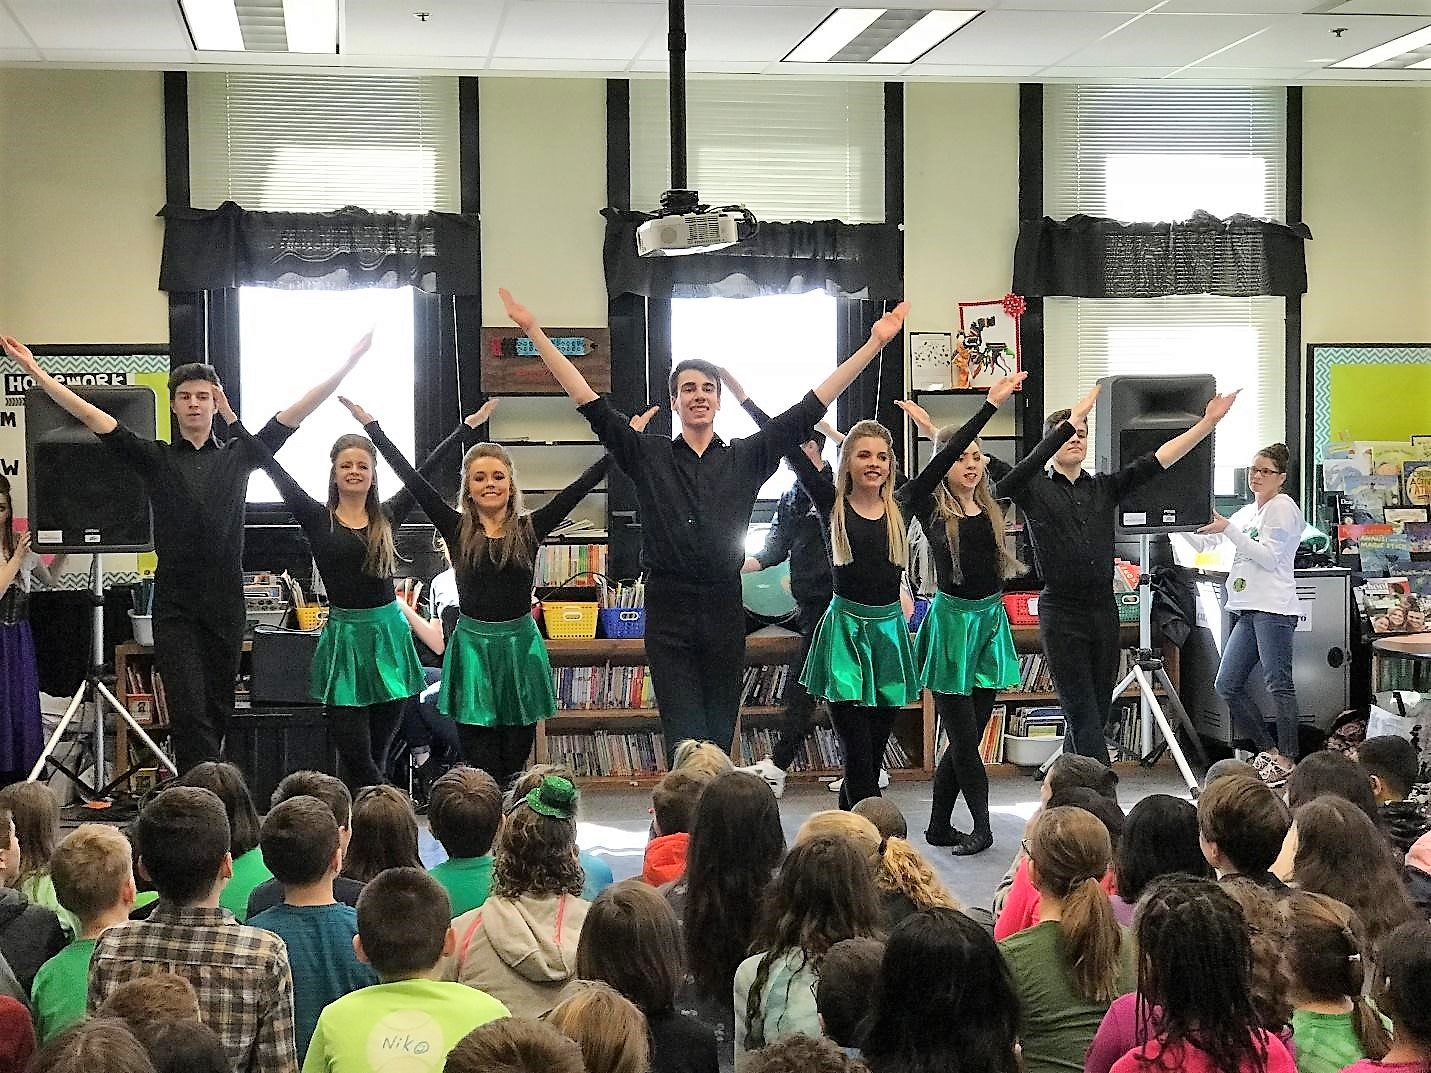 Irish dance troupe performing